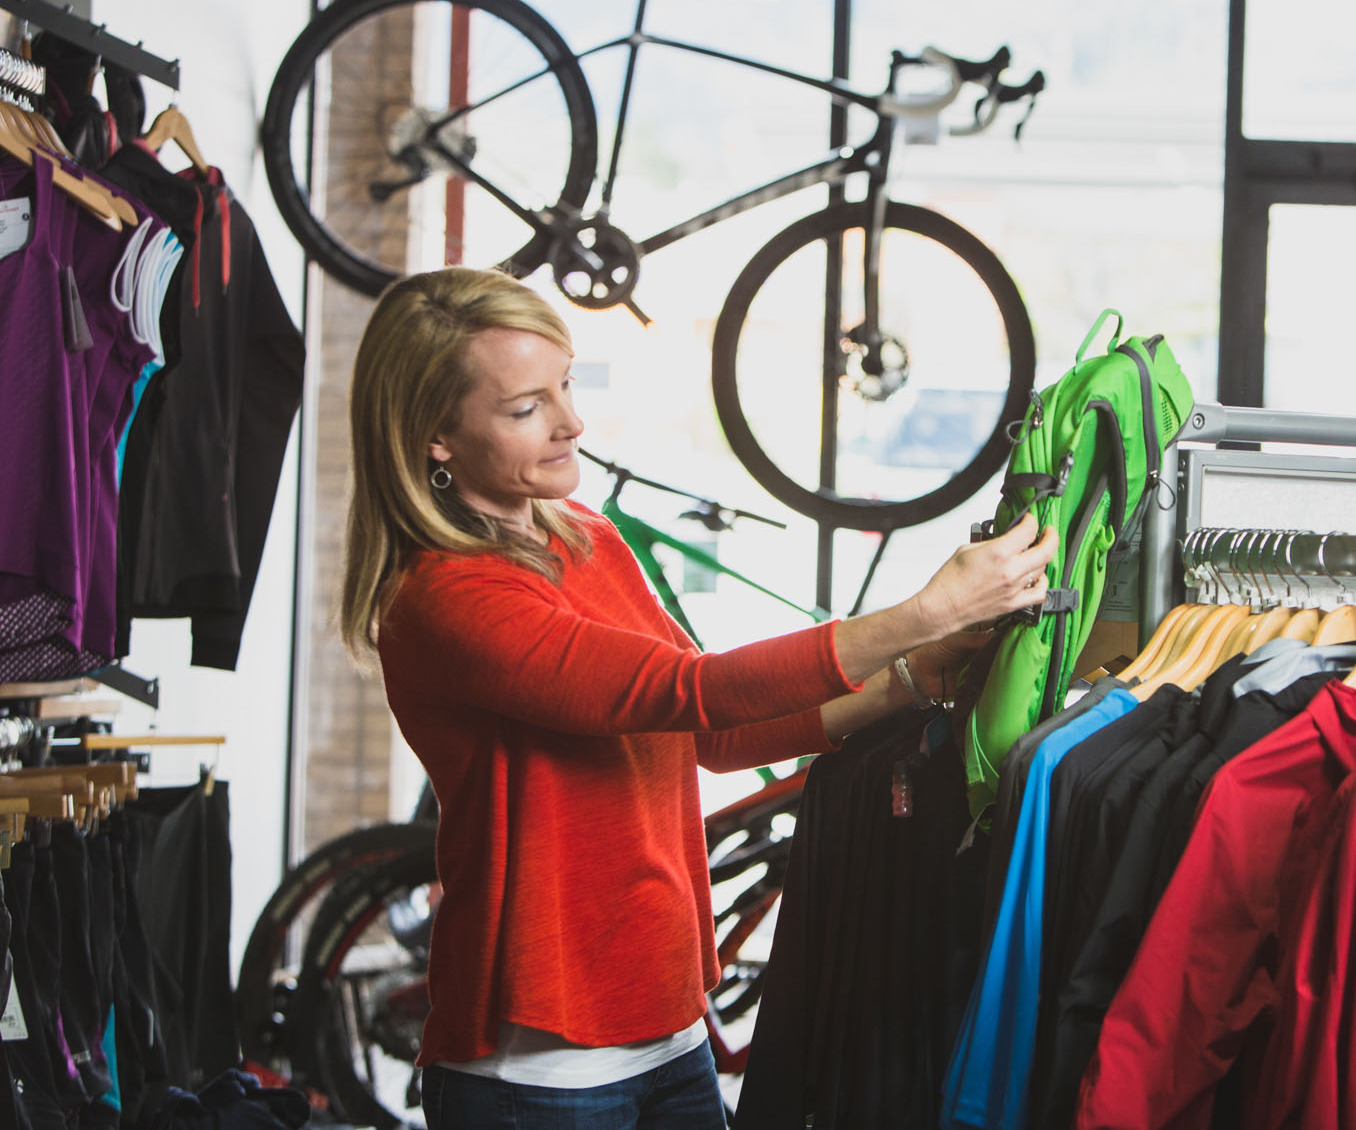 Woman shopping for cycling apparel.